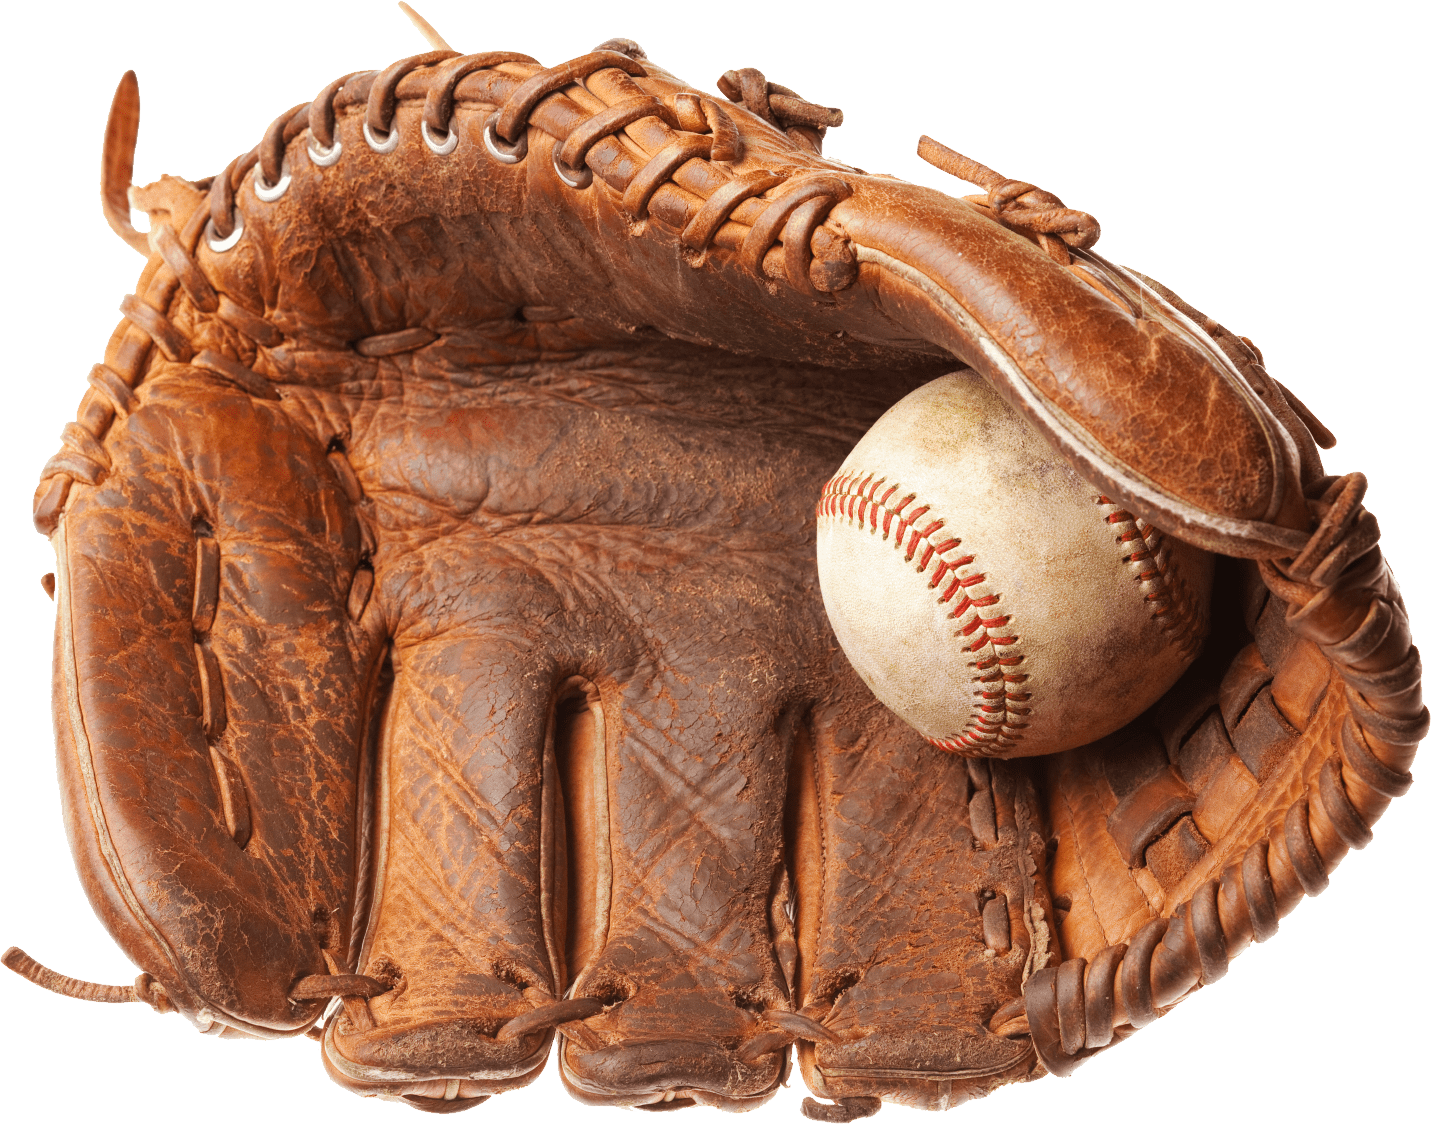 Baseball glove clipart vector free download Vintage Baseball Glove transparent PNG - StickPNG vector free download